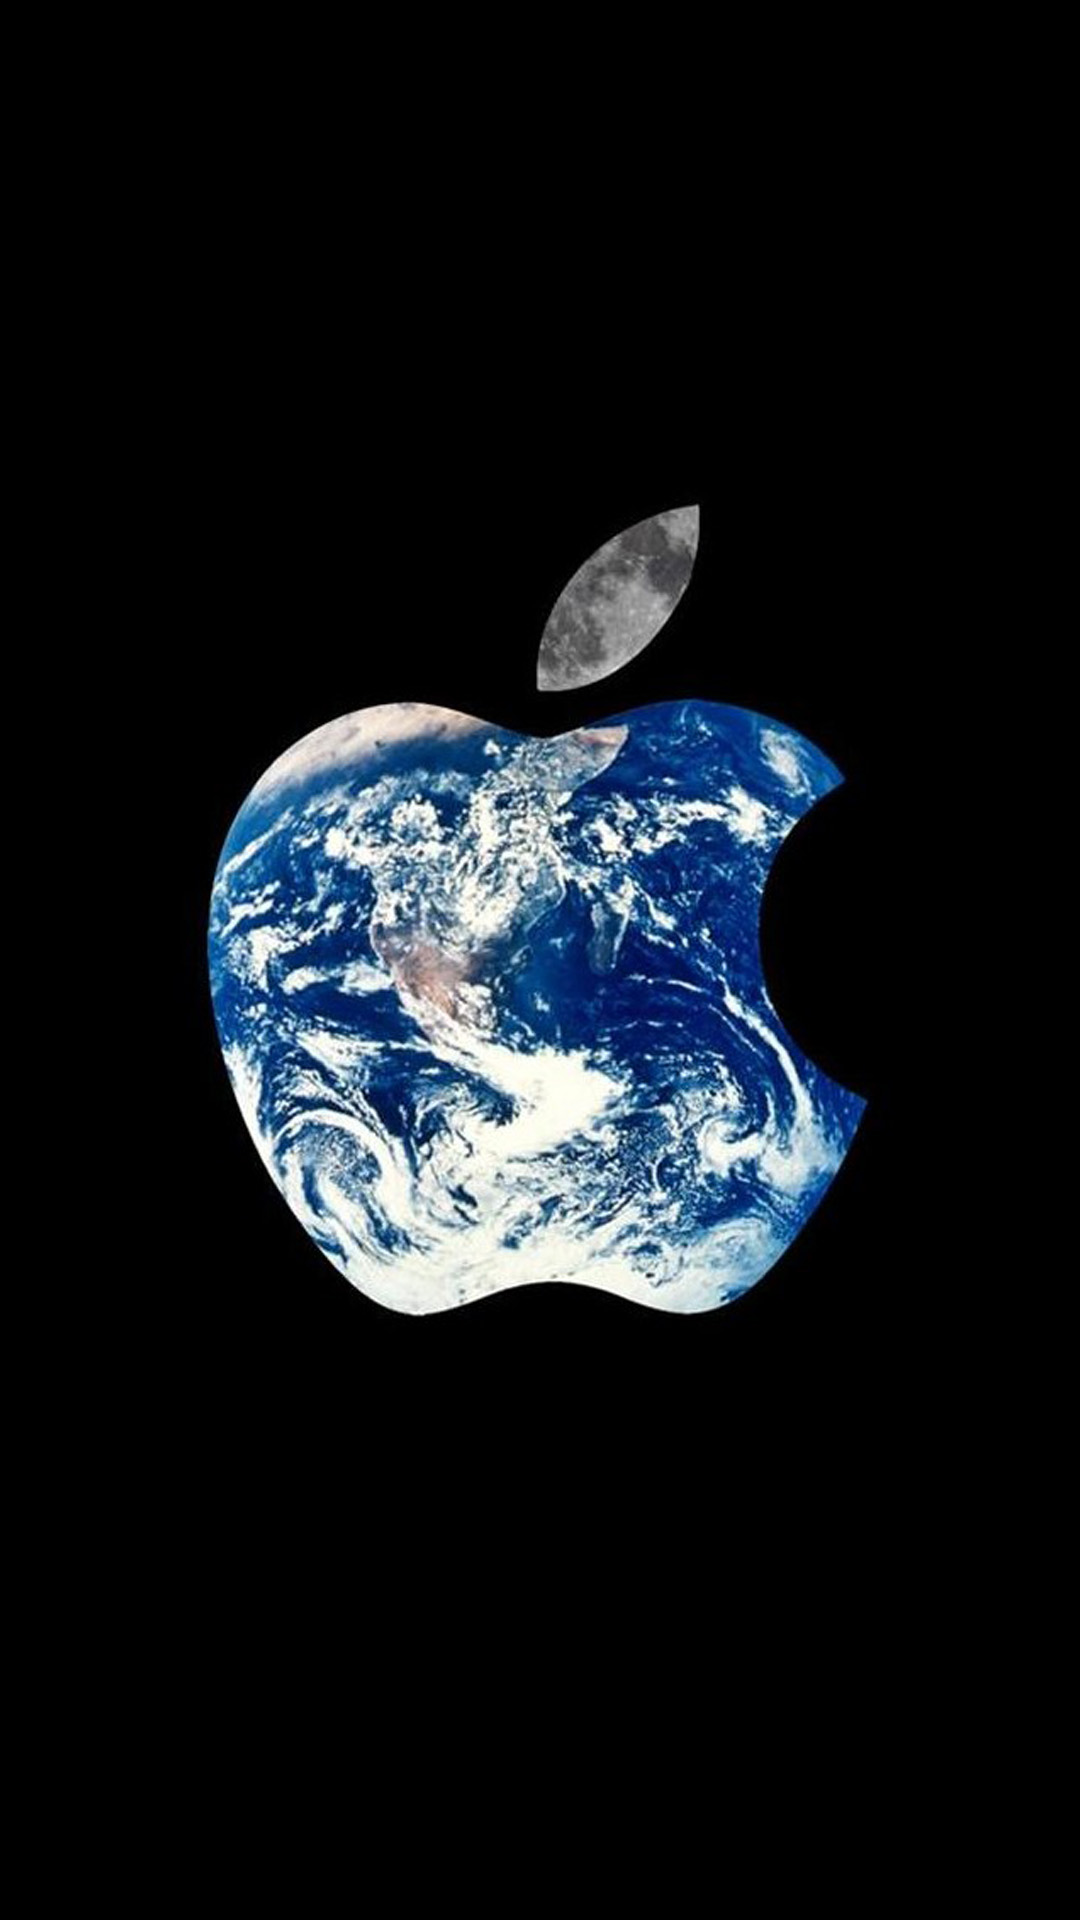 Apple iphone wallpapers high quality download free - Iphone images hd wallpaper ...